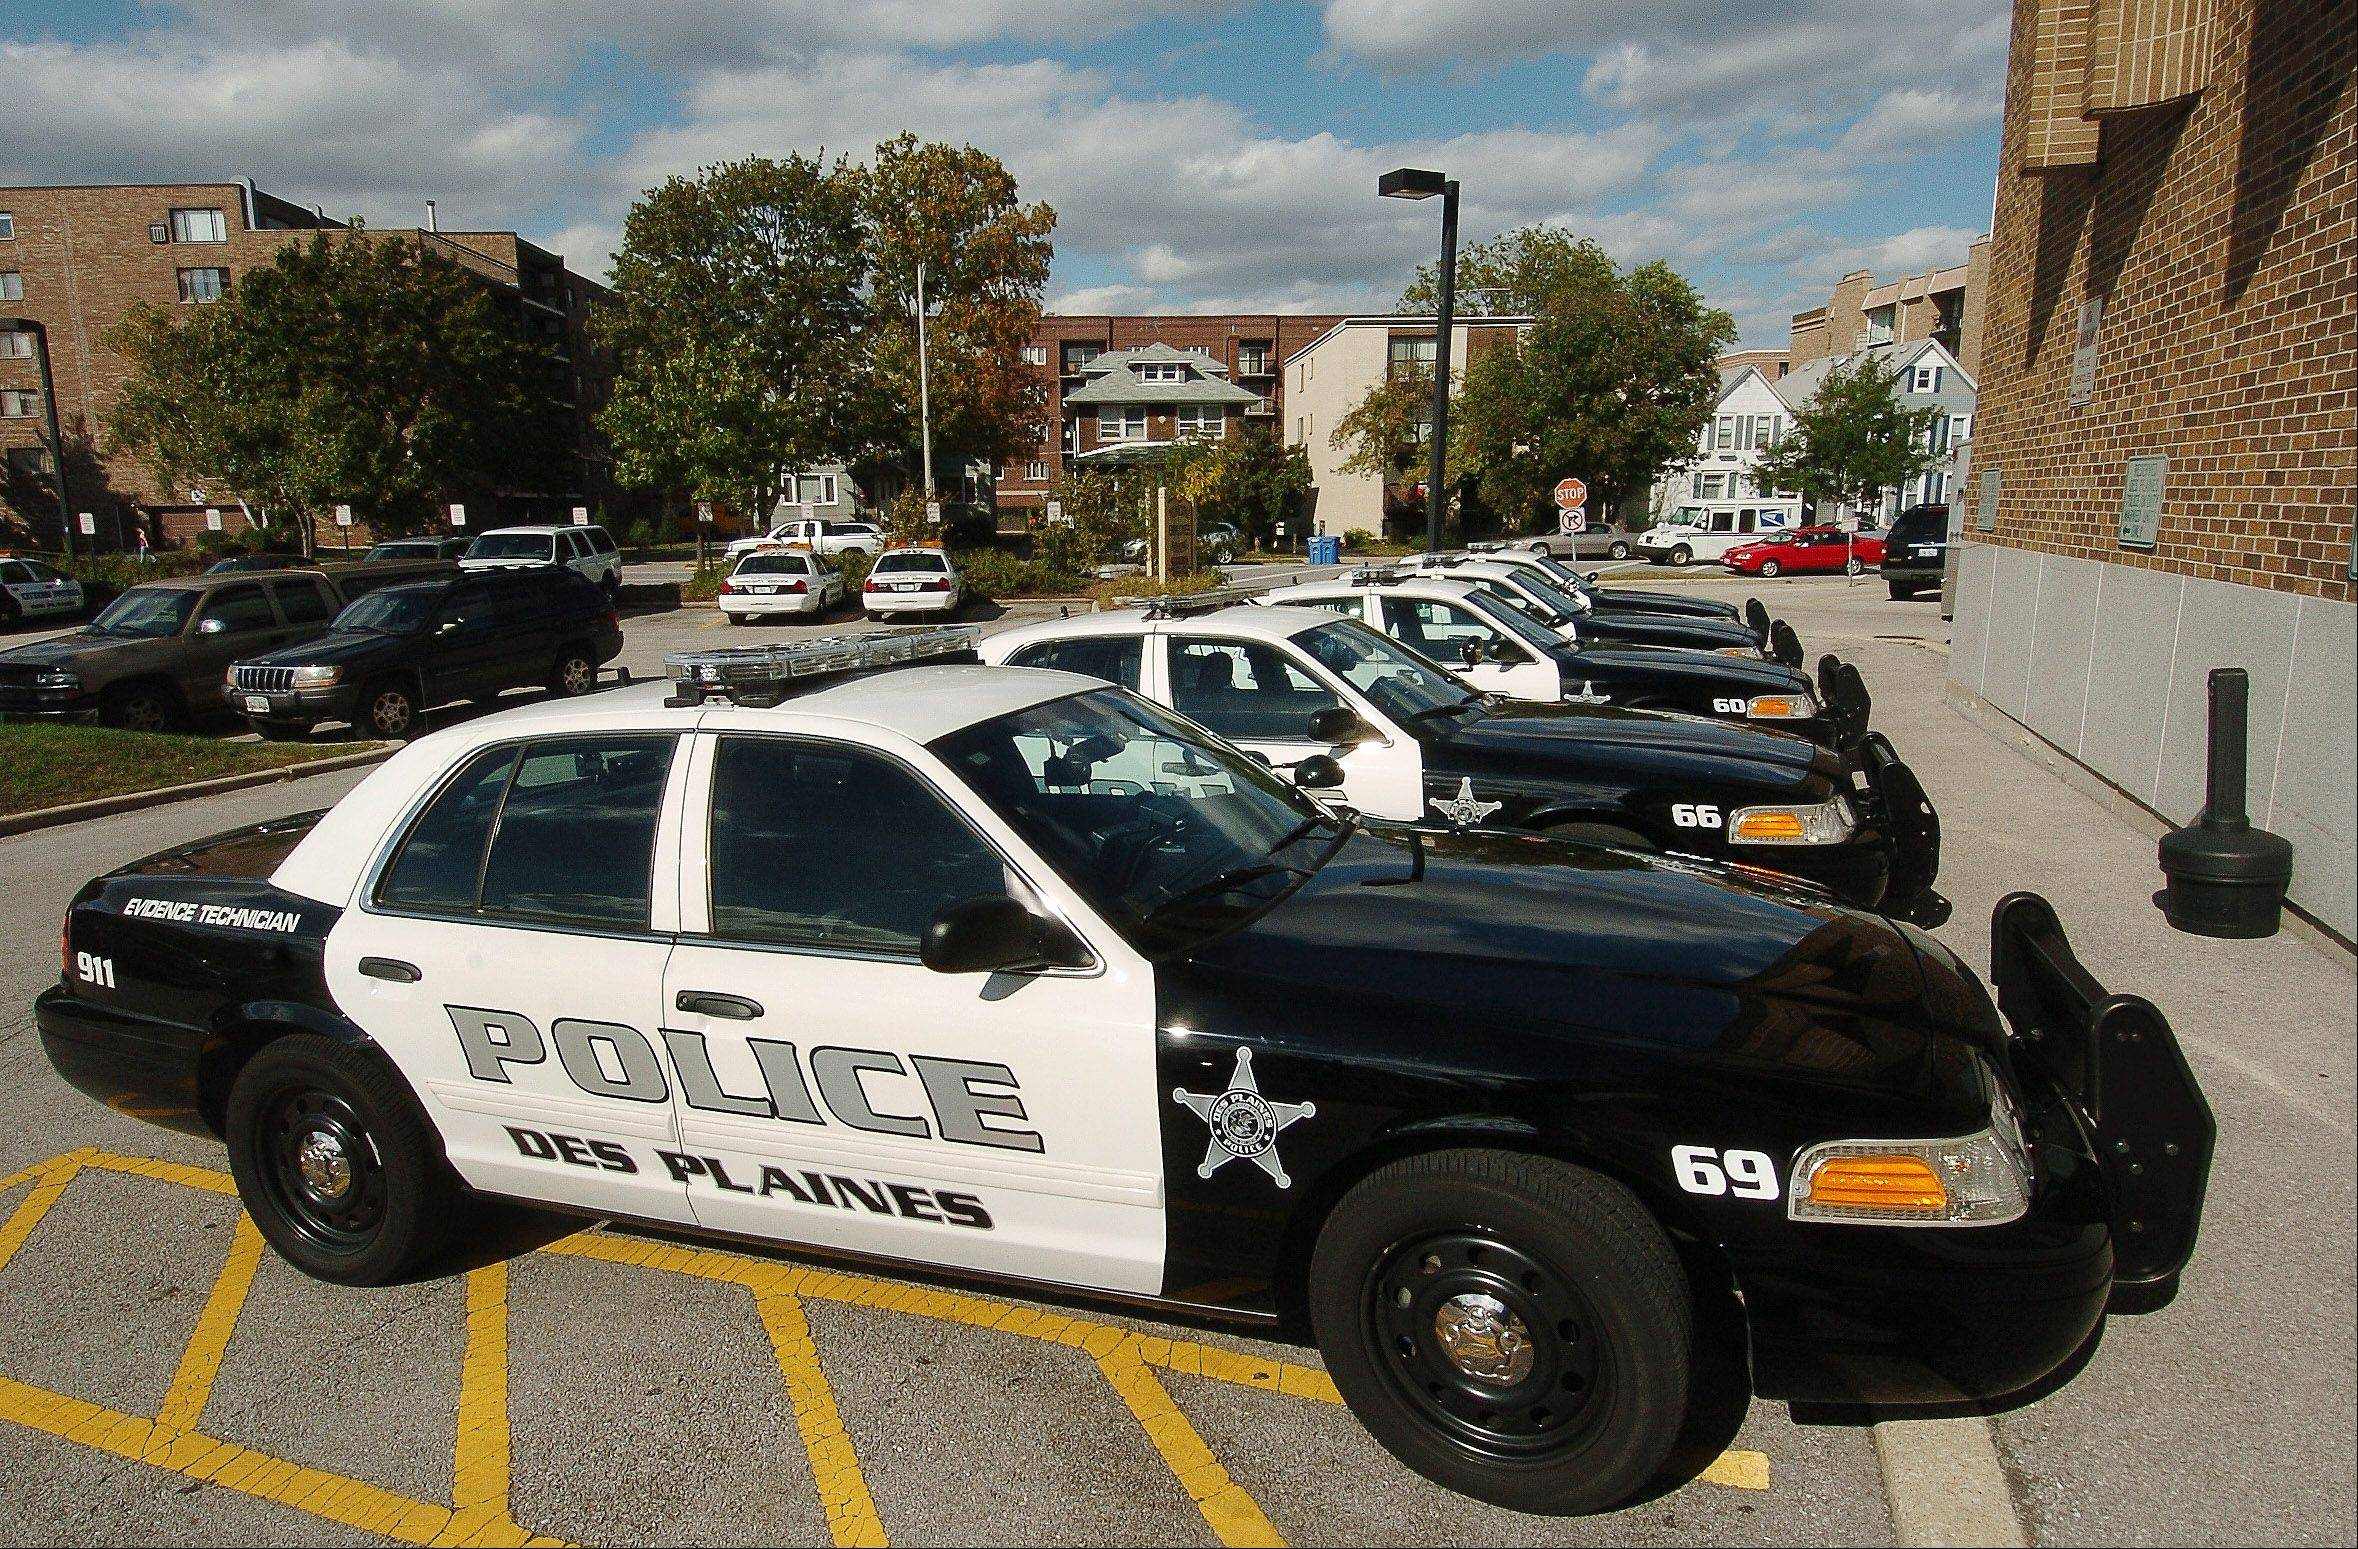 Des Plaines cops facing suspensions over padding hours tied to grant